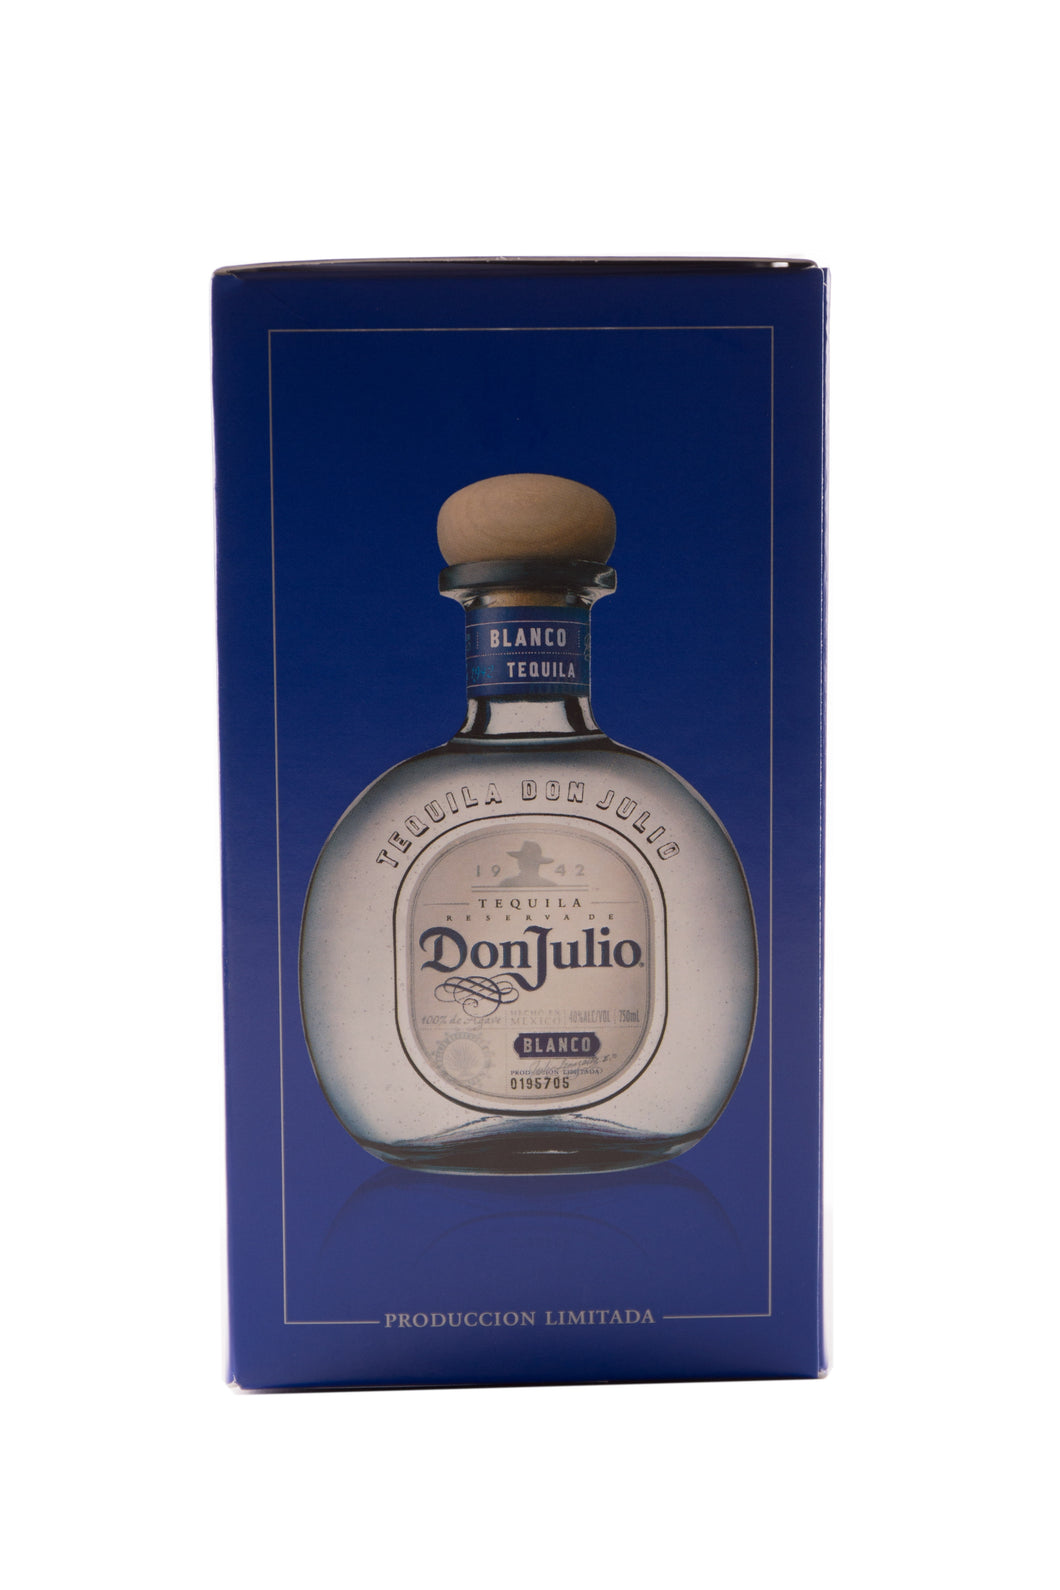 Don Julio Silver Teq 750